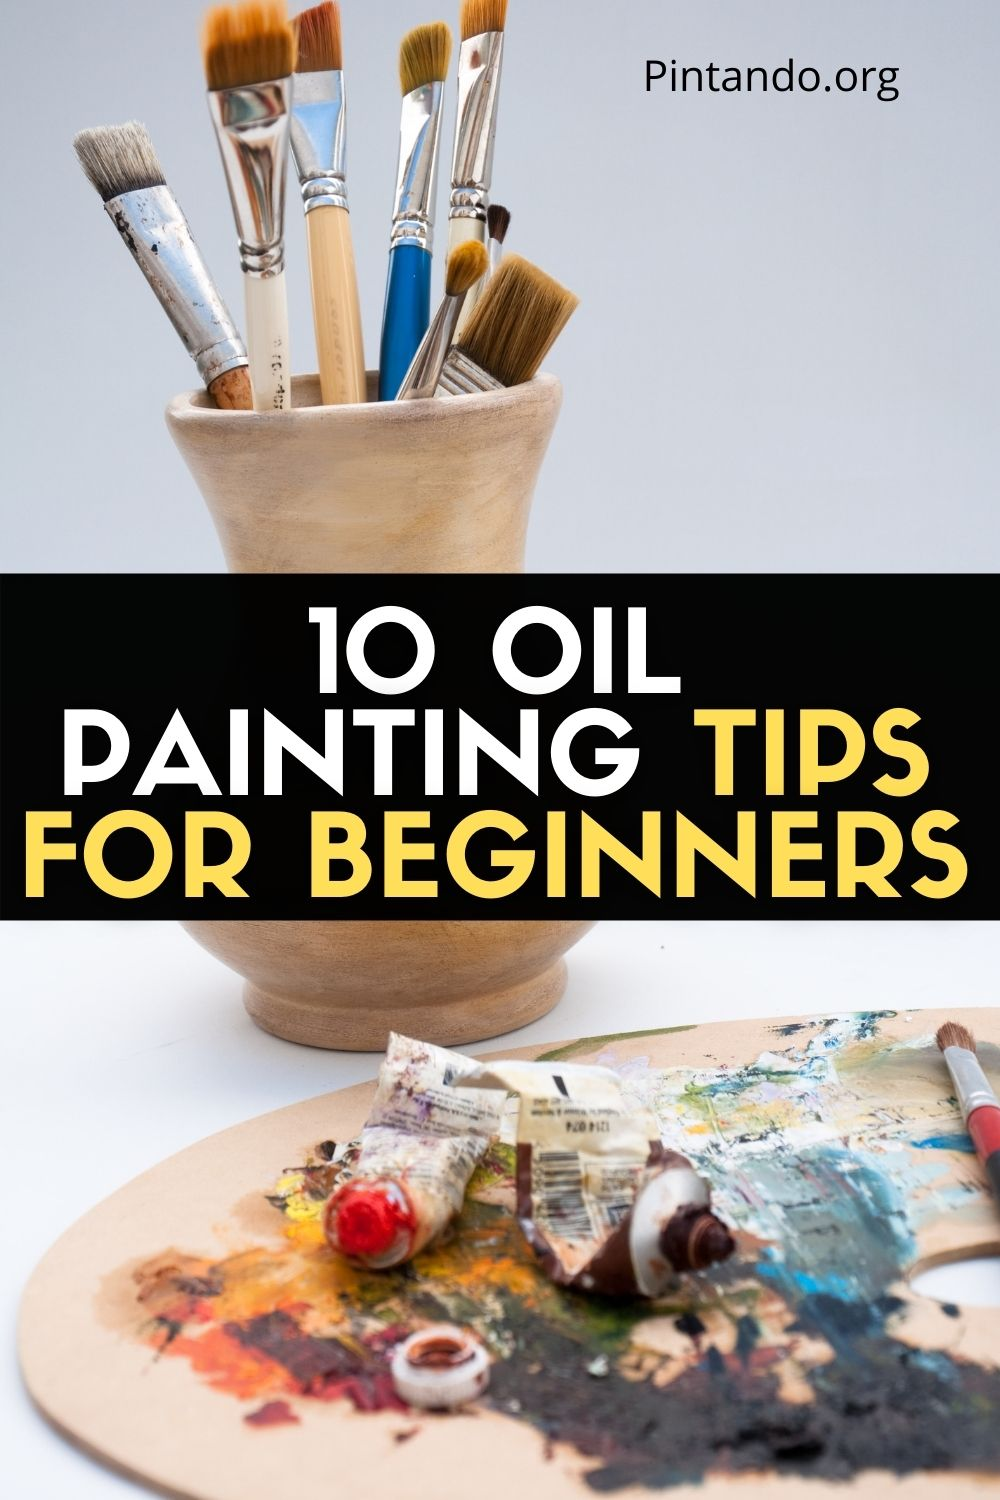 10 OIL PAINTING TIPS FOR BEGINNERS (2)